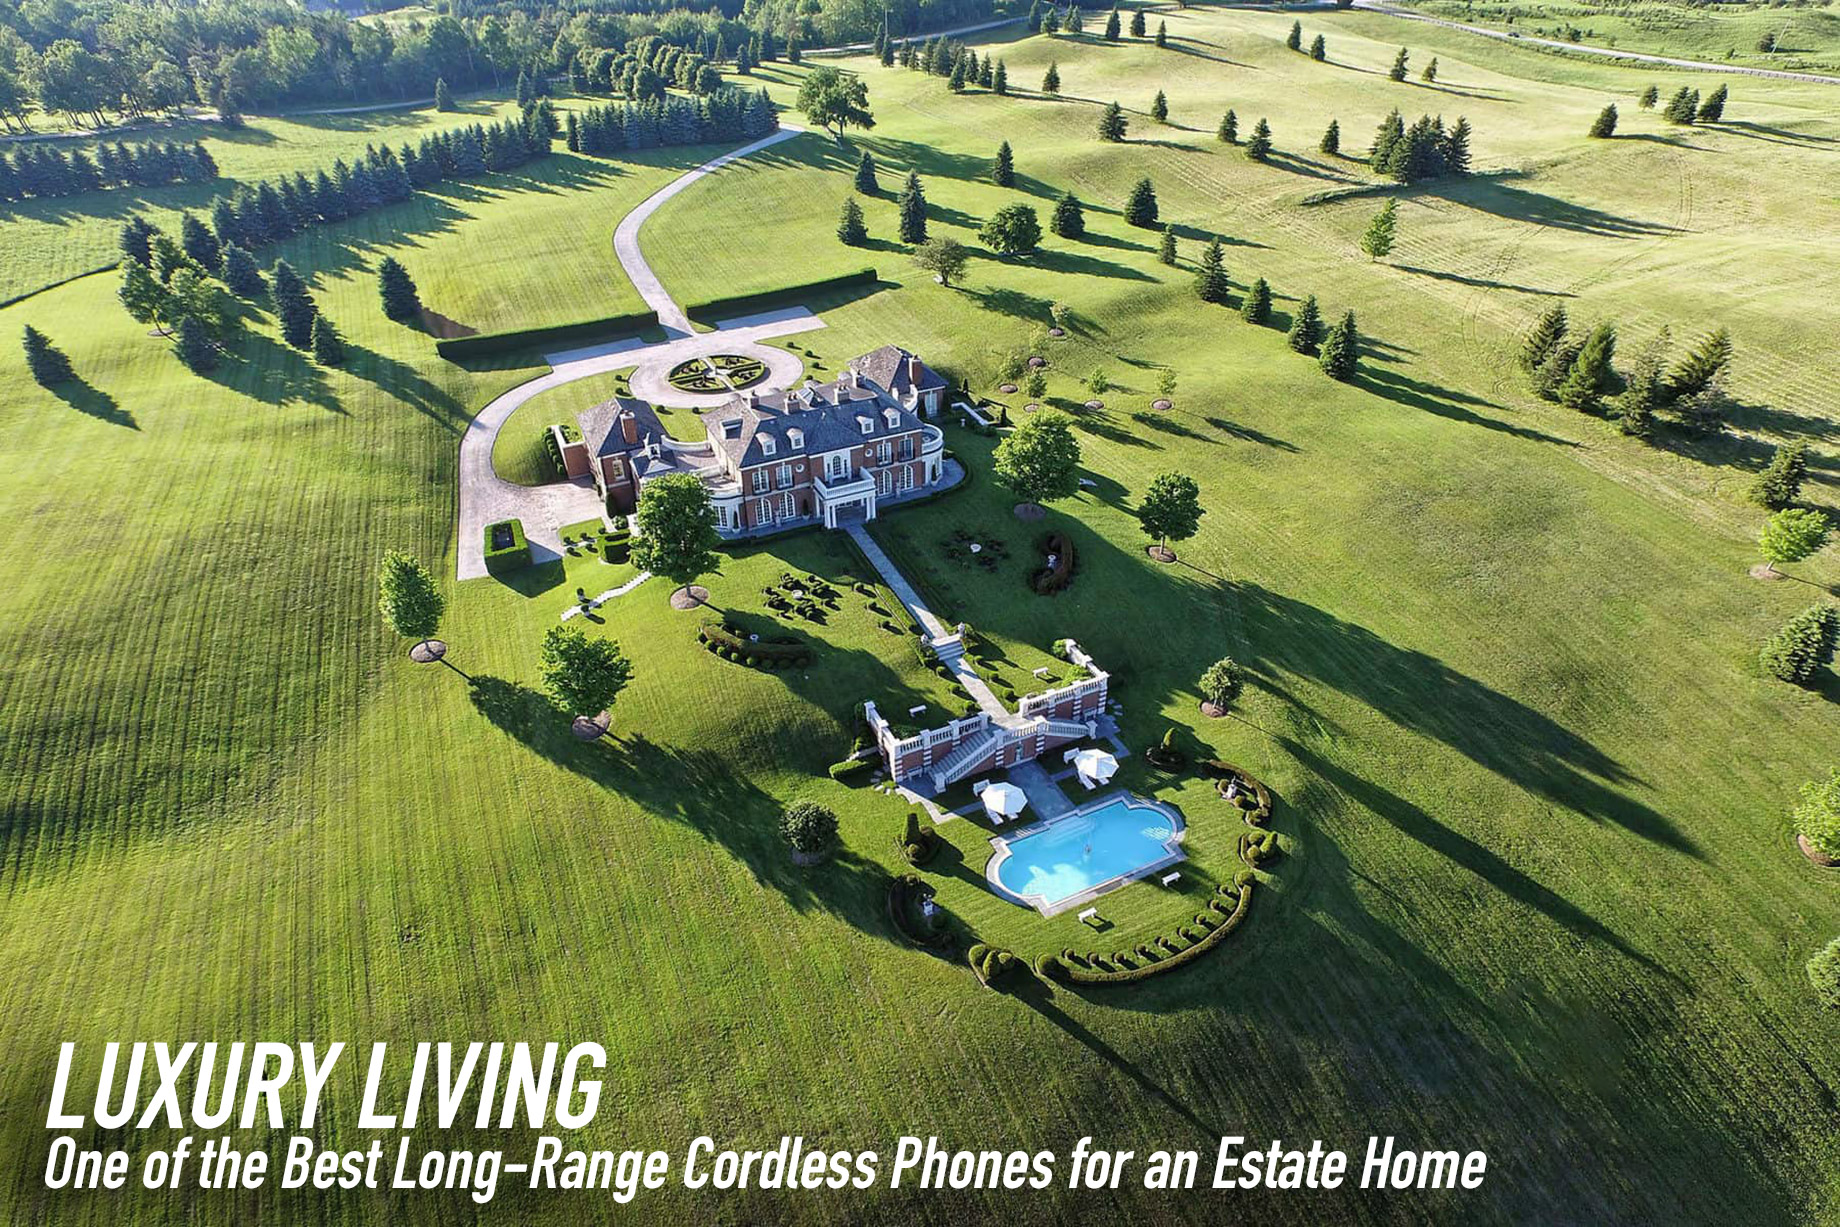 Luxury Living - One of the Best Long-Range Cordless Phones for an Estate Home